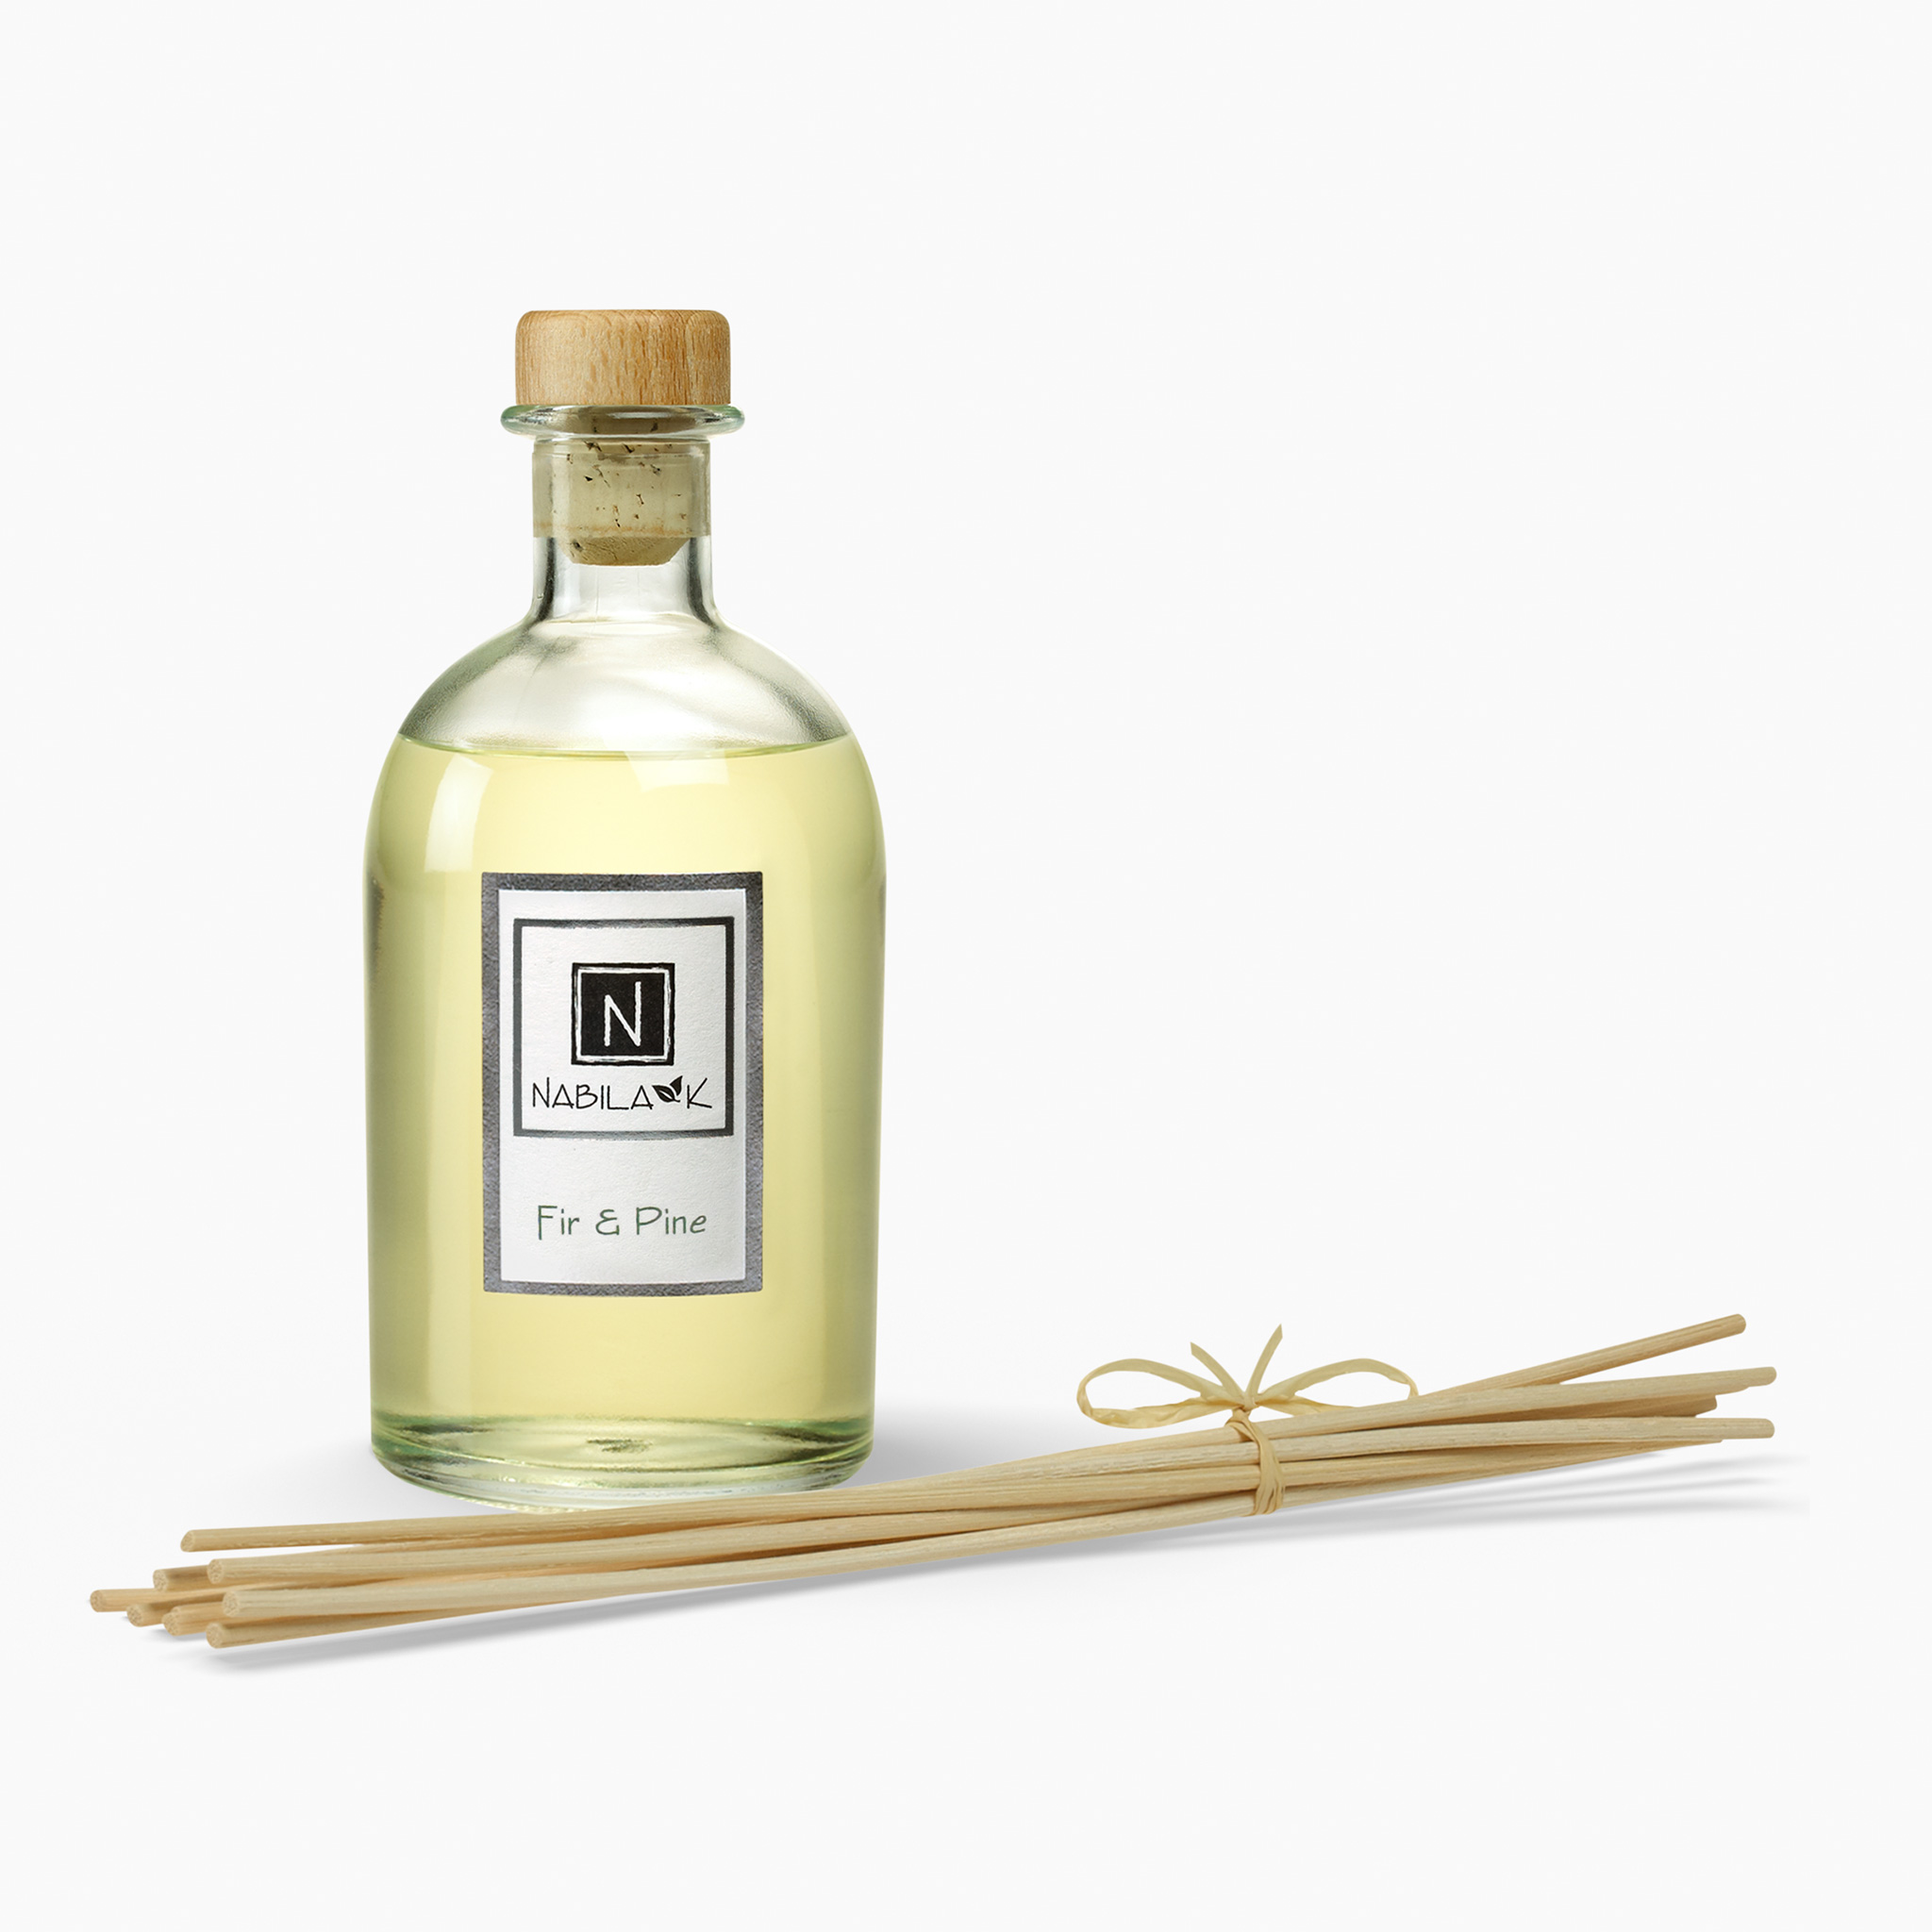 1 Bottle of Nabila K's Fir and Pine Diffuser with Reeds